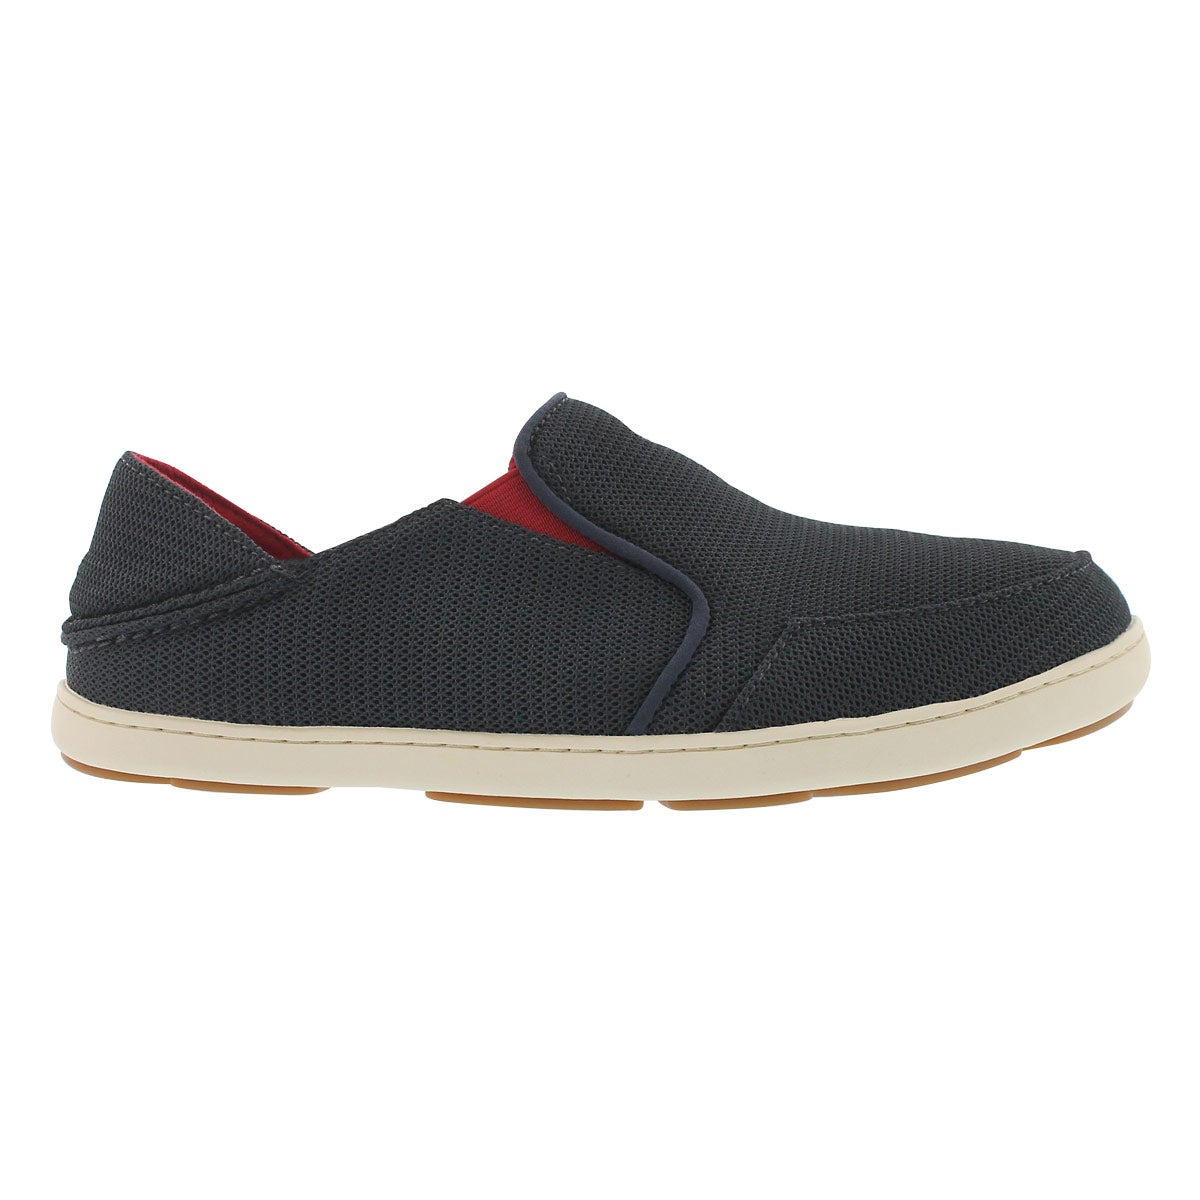 Mns NoheaMesh crbn/rd slipon casual shoe